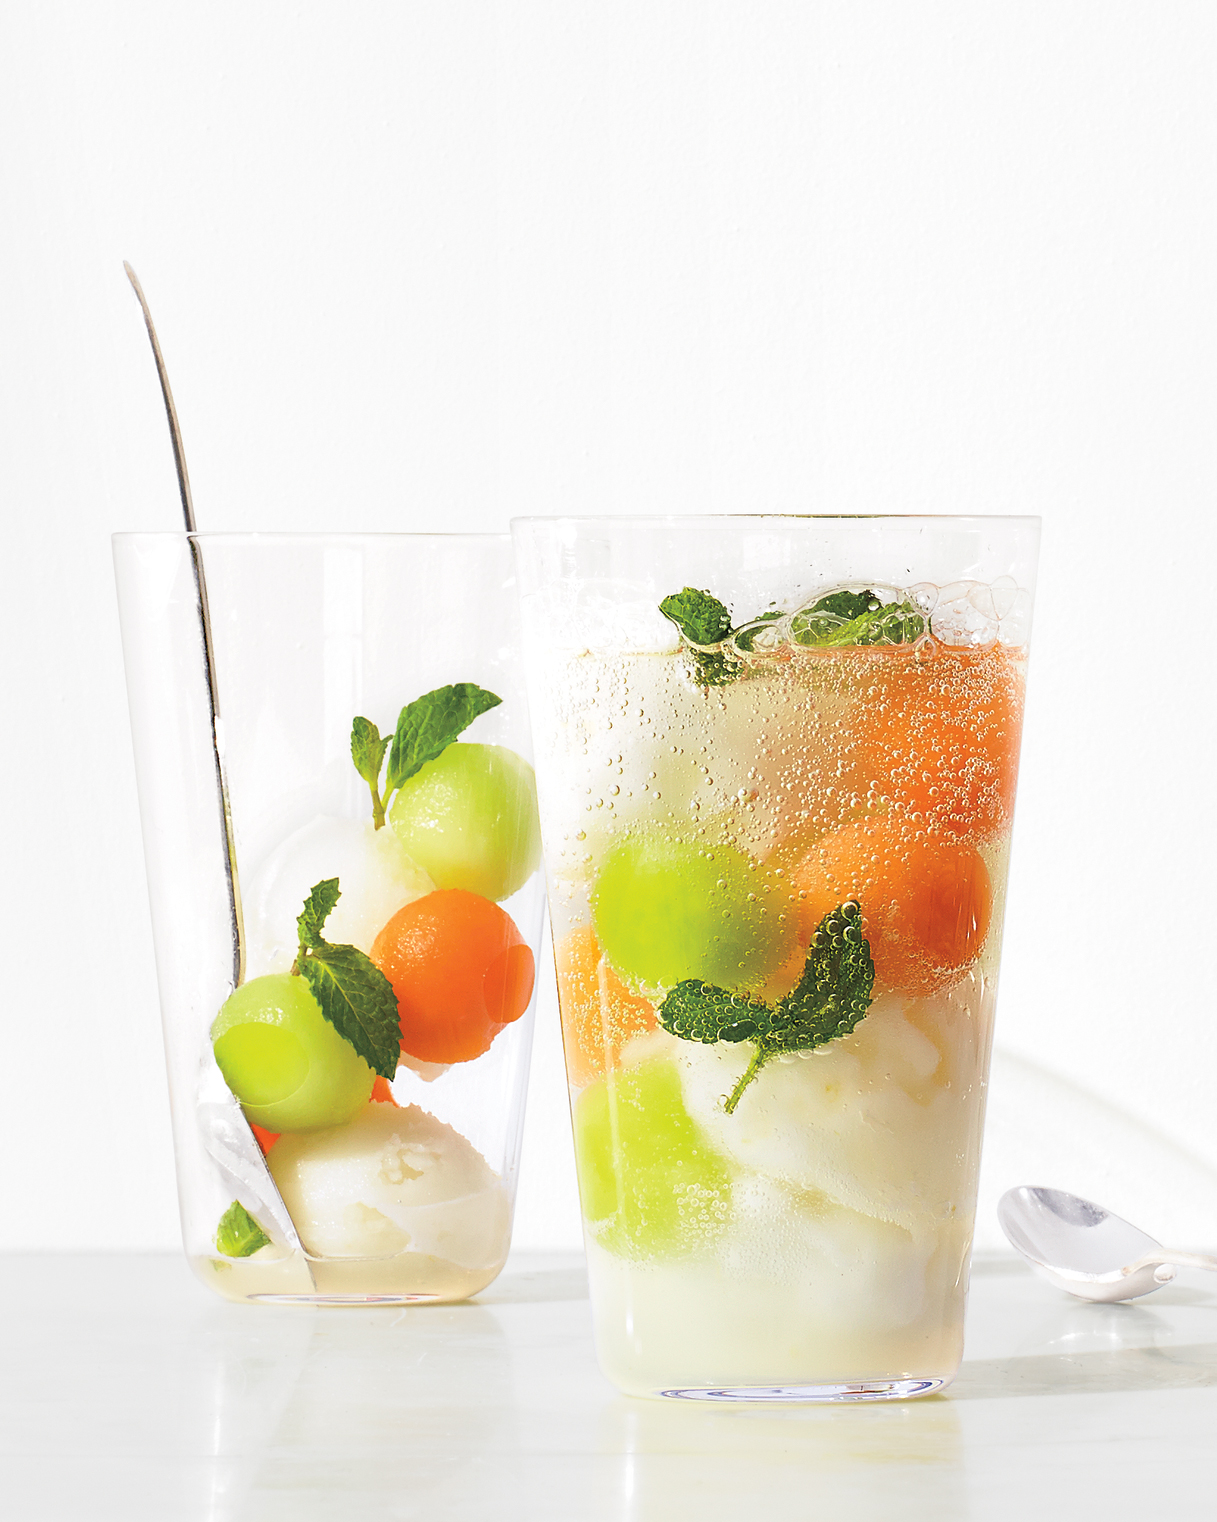 melon-float-246-d111981.jpg